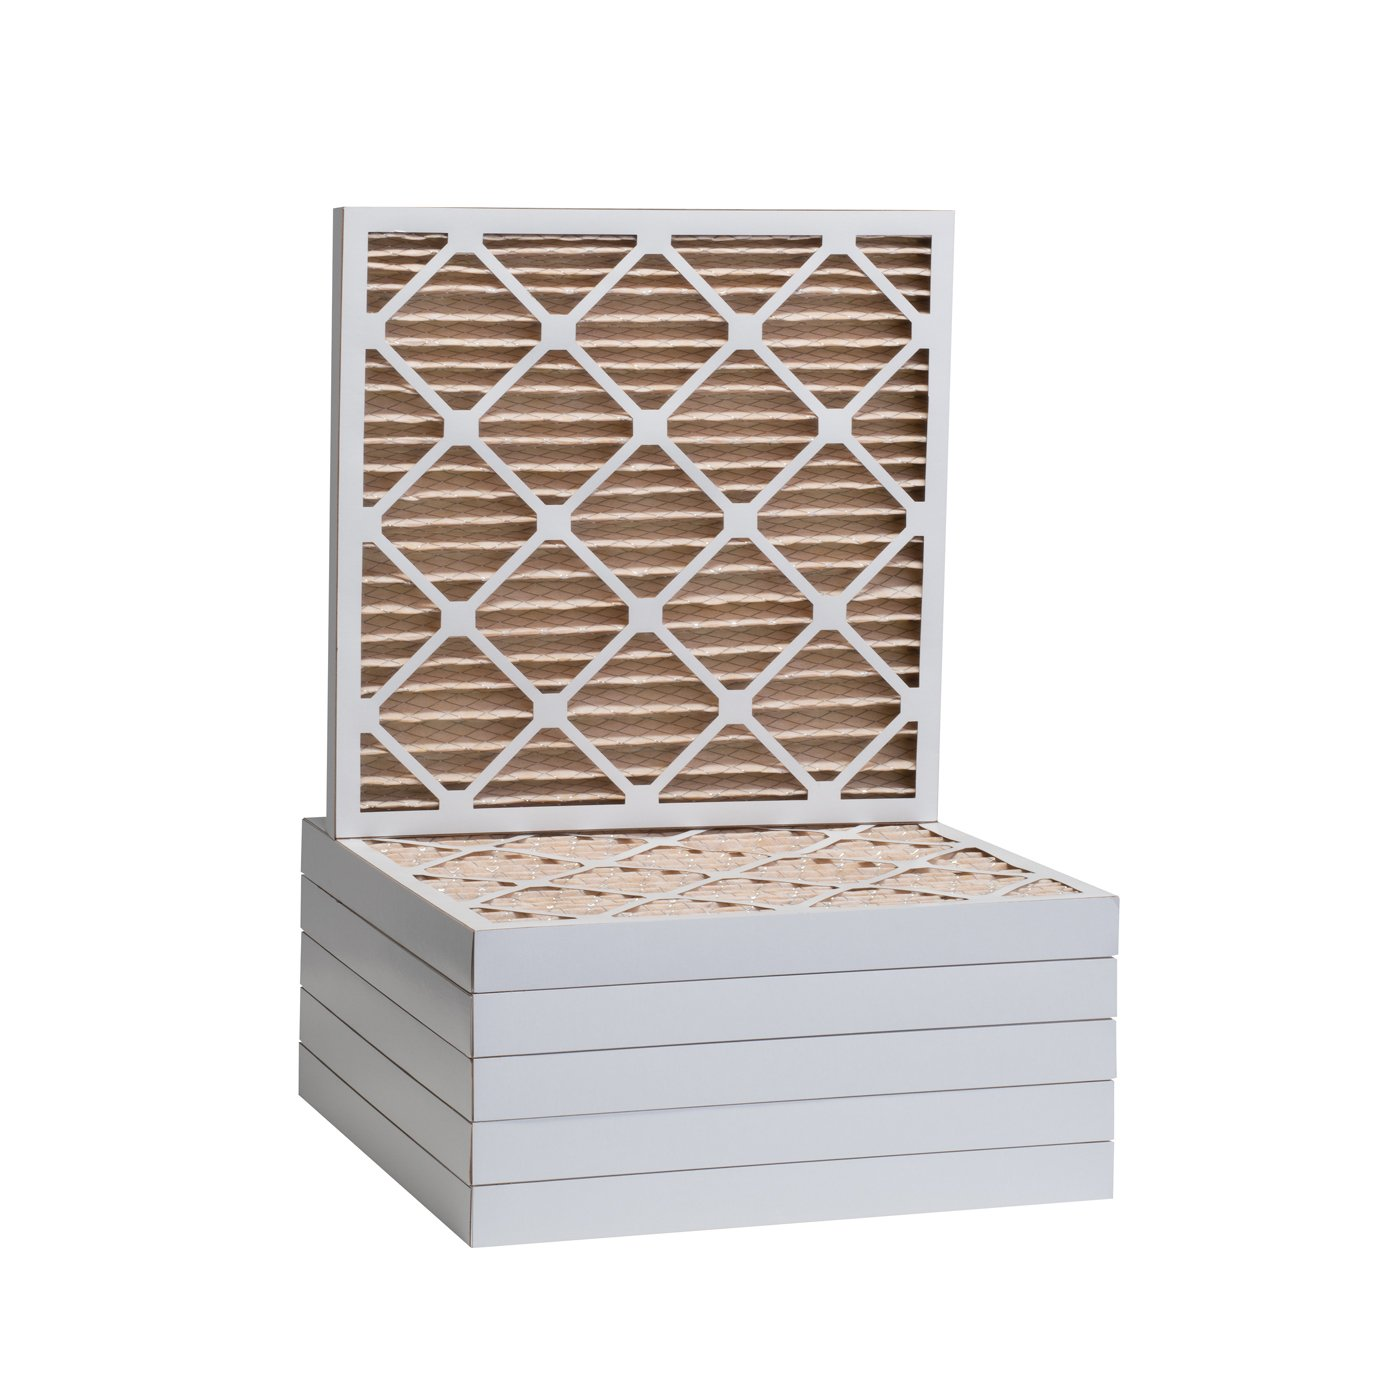 Pleated Fabric Pack of 6 ReplacementBrand P15S-611830-6-PACK P15S-611830 Pleated Air Filter MERV 11 18 x 30 x 1 18 x 30 x 1 Commercial Water Dist P15S-622424-6-PACK